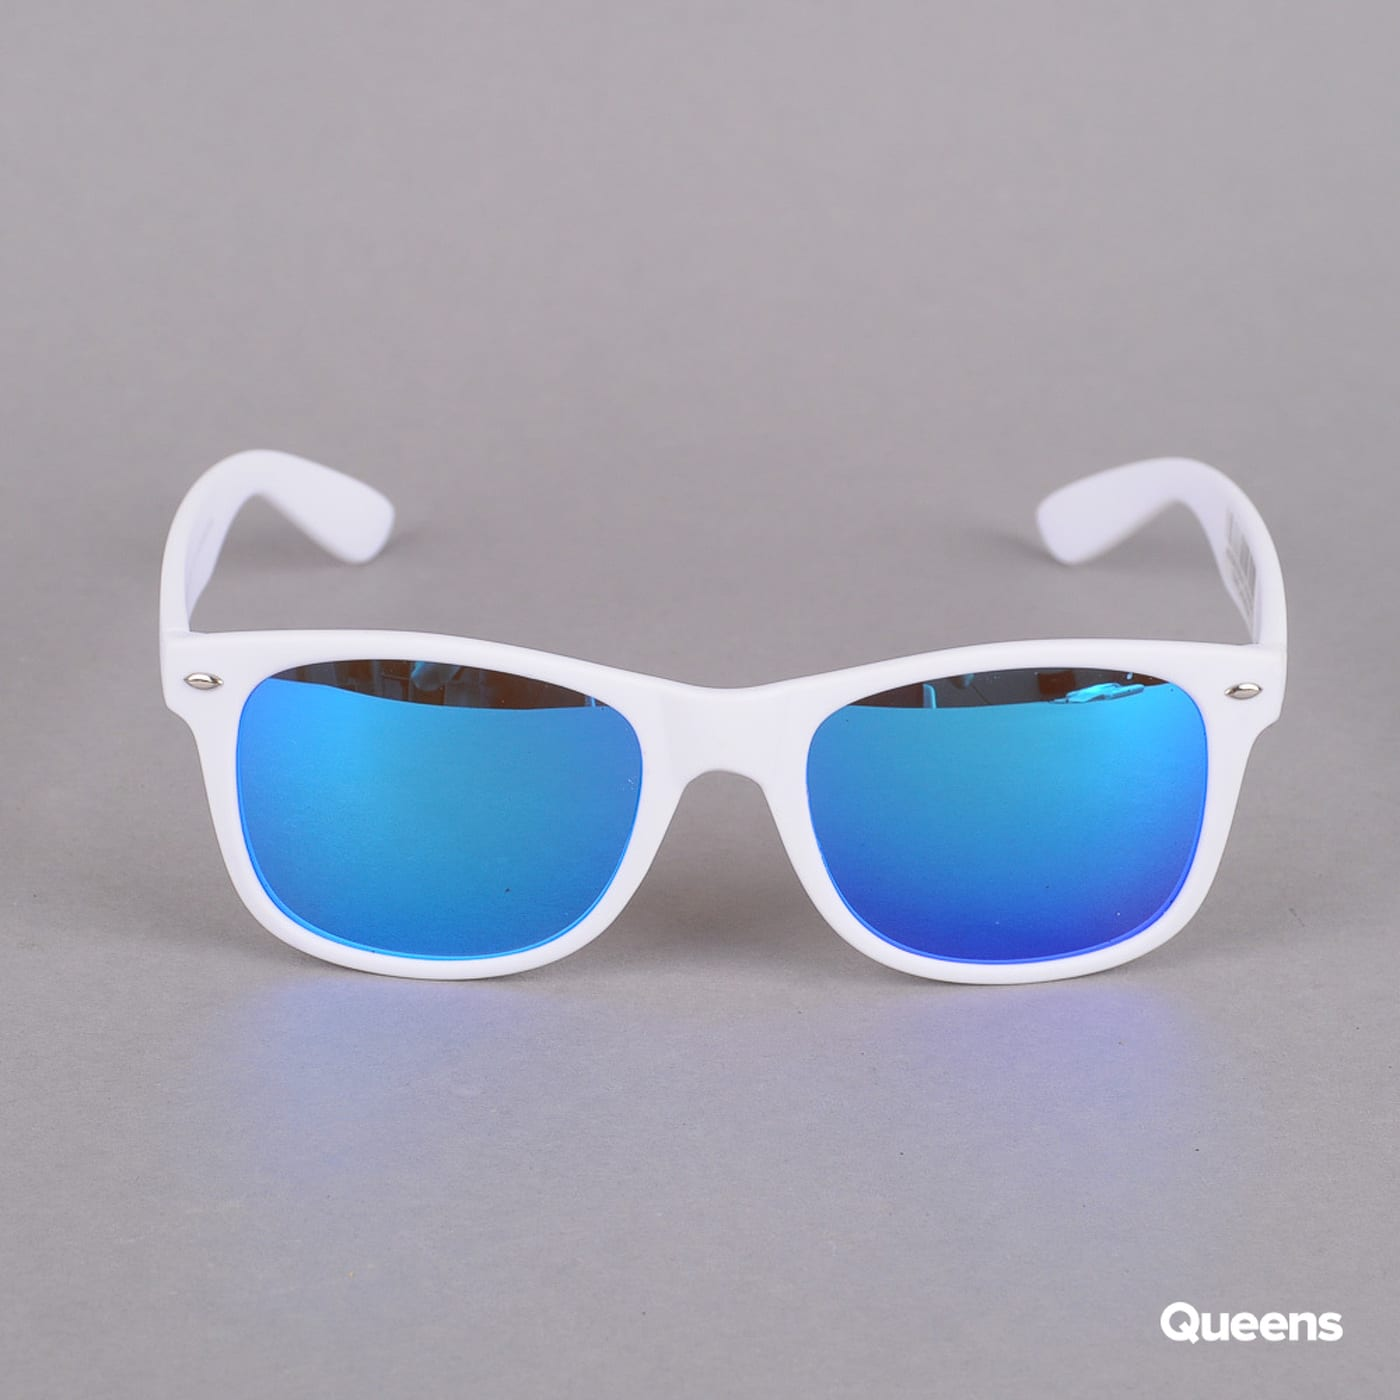 MD Sunglasses Likoma Mirror weiß / blau